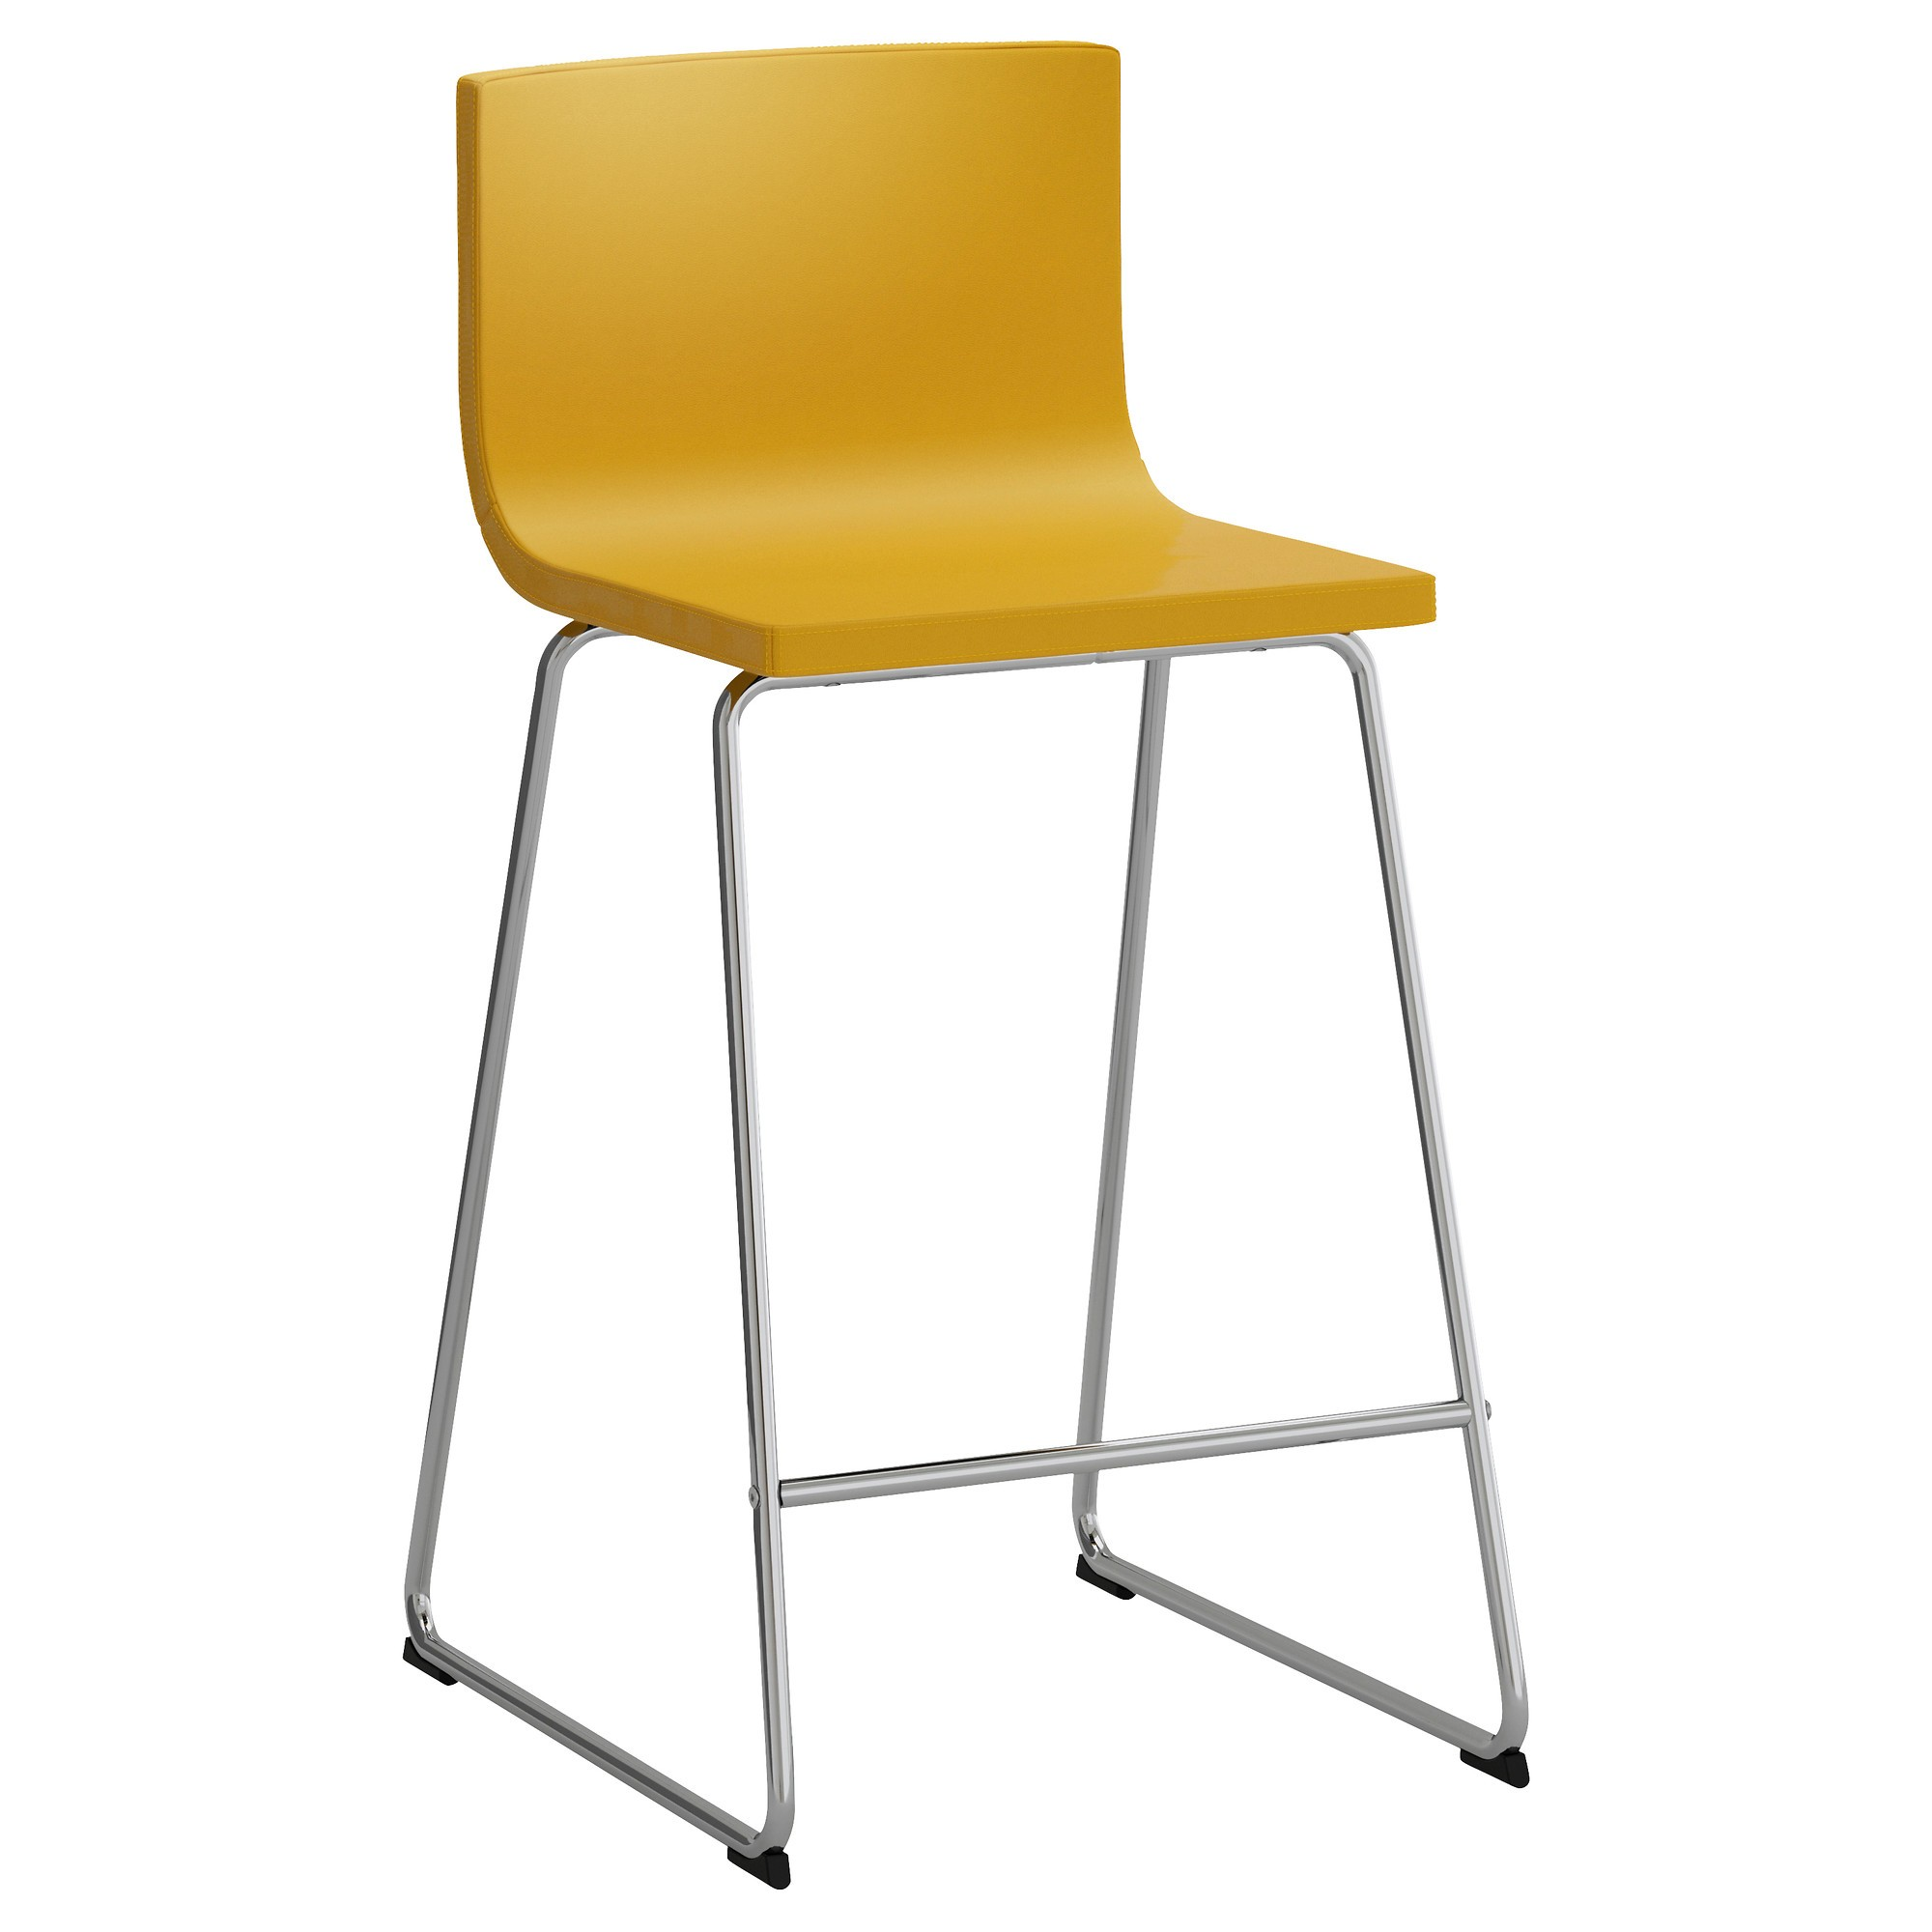 Chaise Haute Tabouret De Bar Ikea Idees